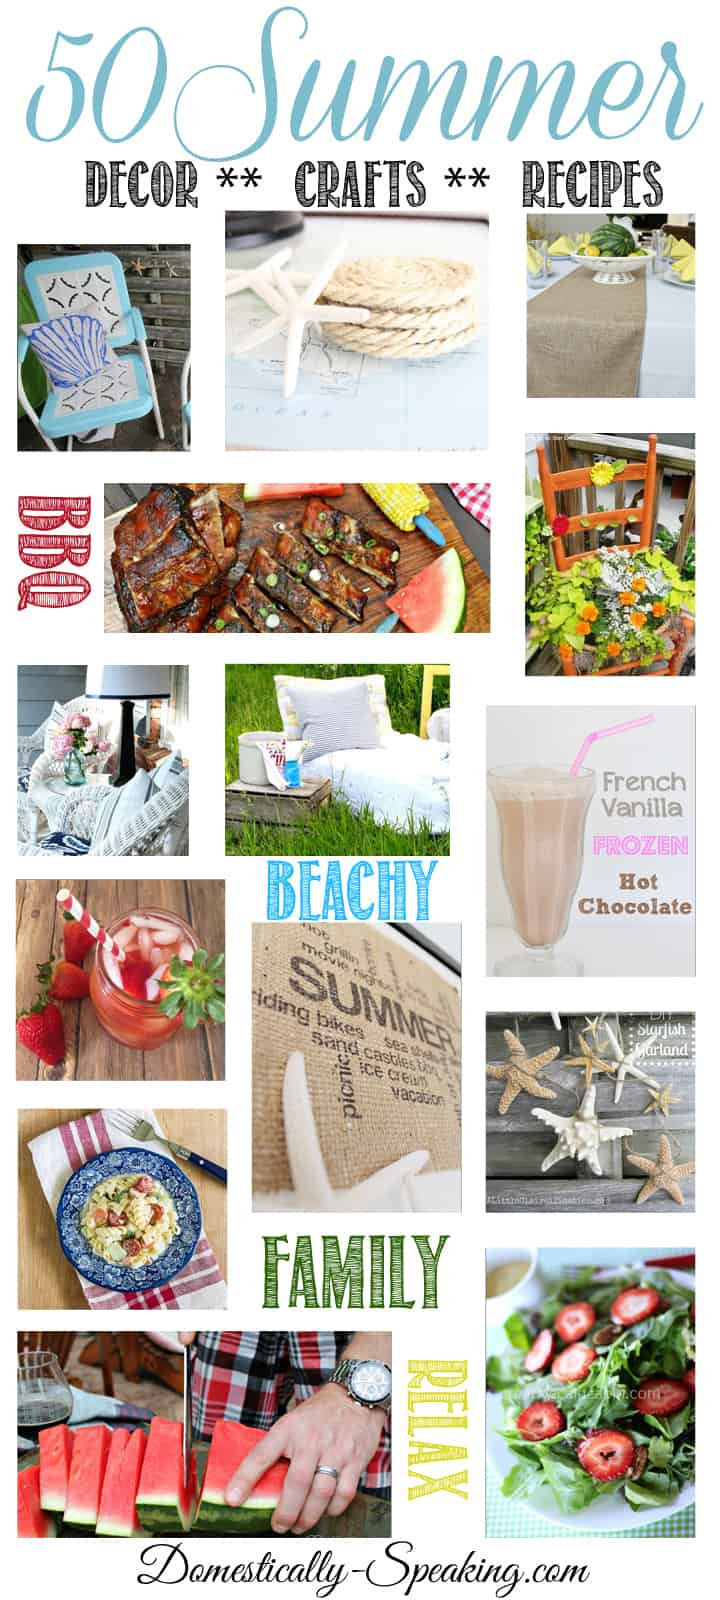 50 Summer Decor Crafts Recipes